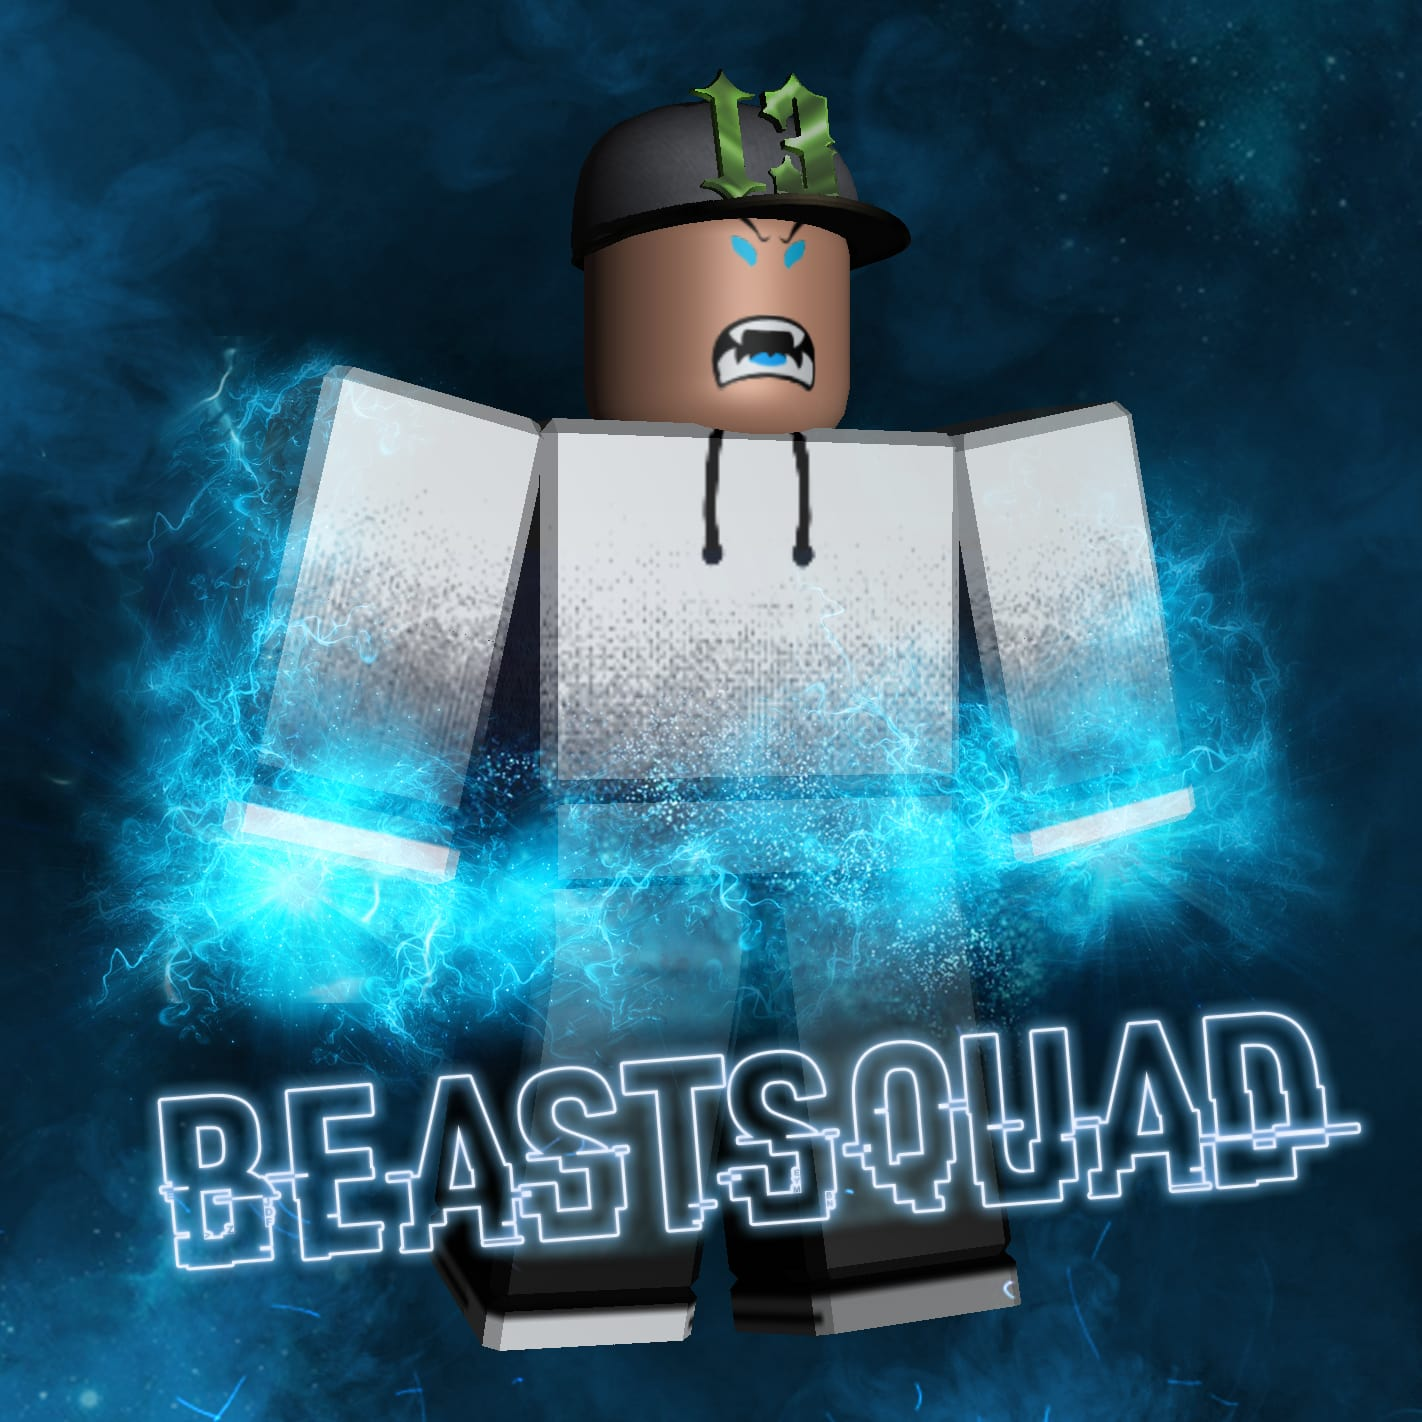 Make You A Gfx For Roblox Thumbnail And Game Icons By Holywatur